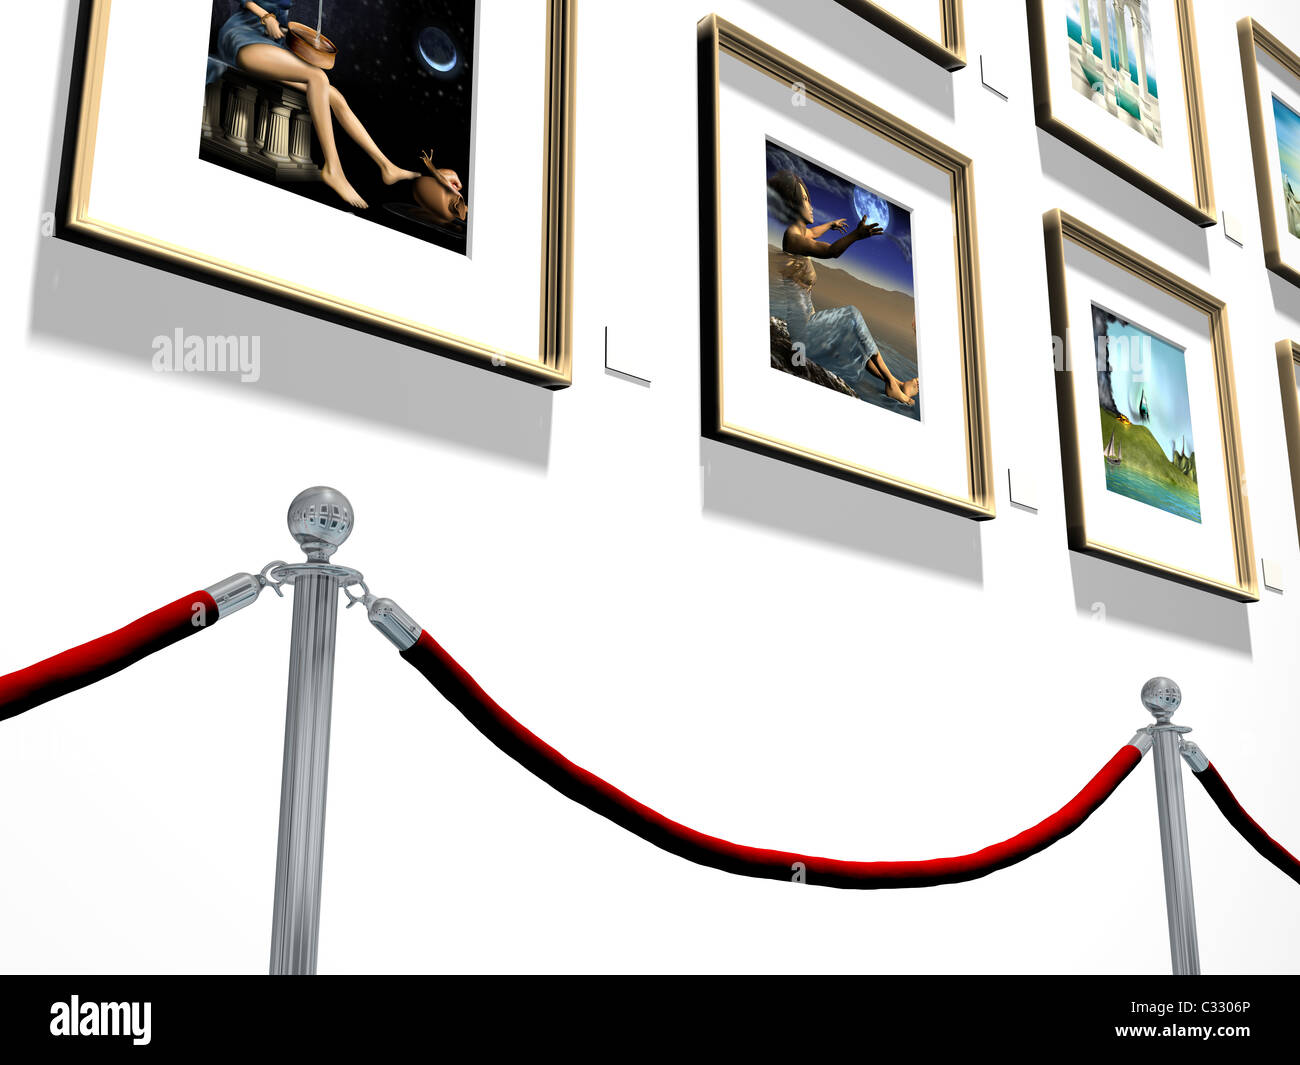 Illustration of pictures hanging on a gallery wall - Stock Image